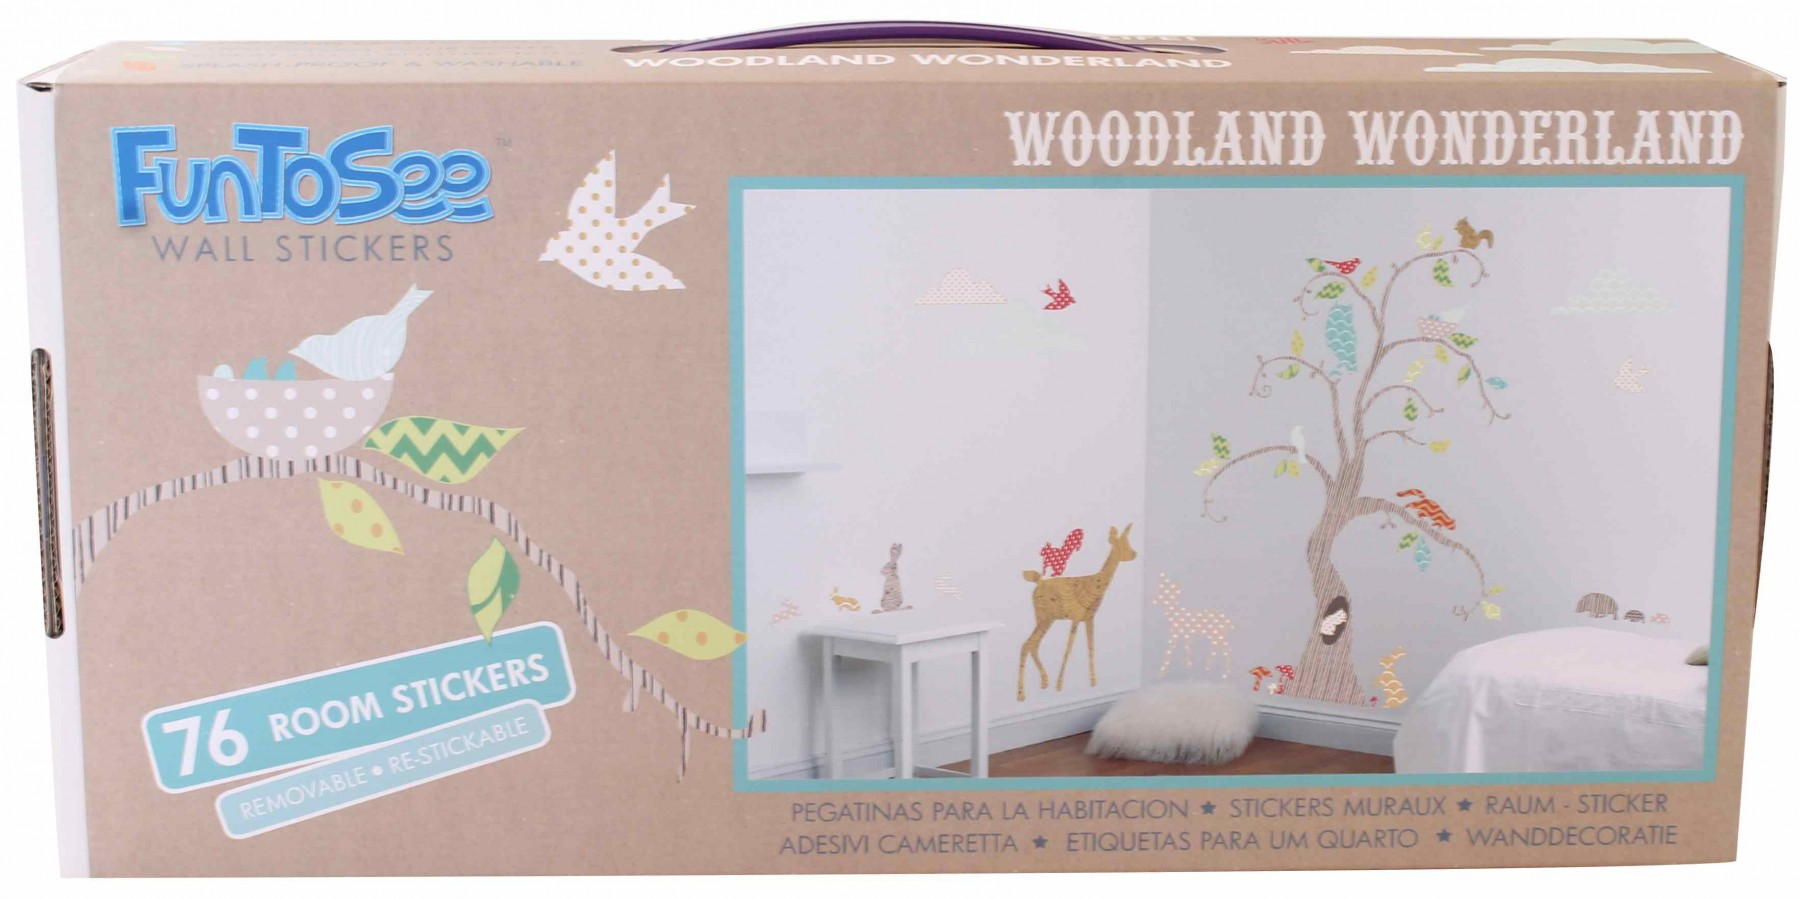 Amazing Fun To See Wall Stickers With Woodland Theme Awesome Design